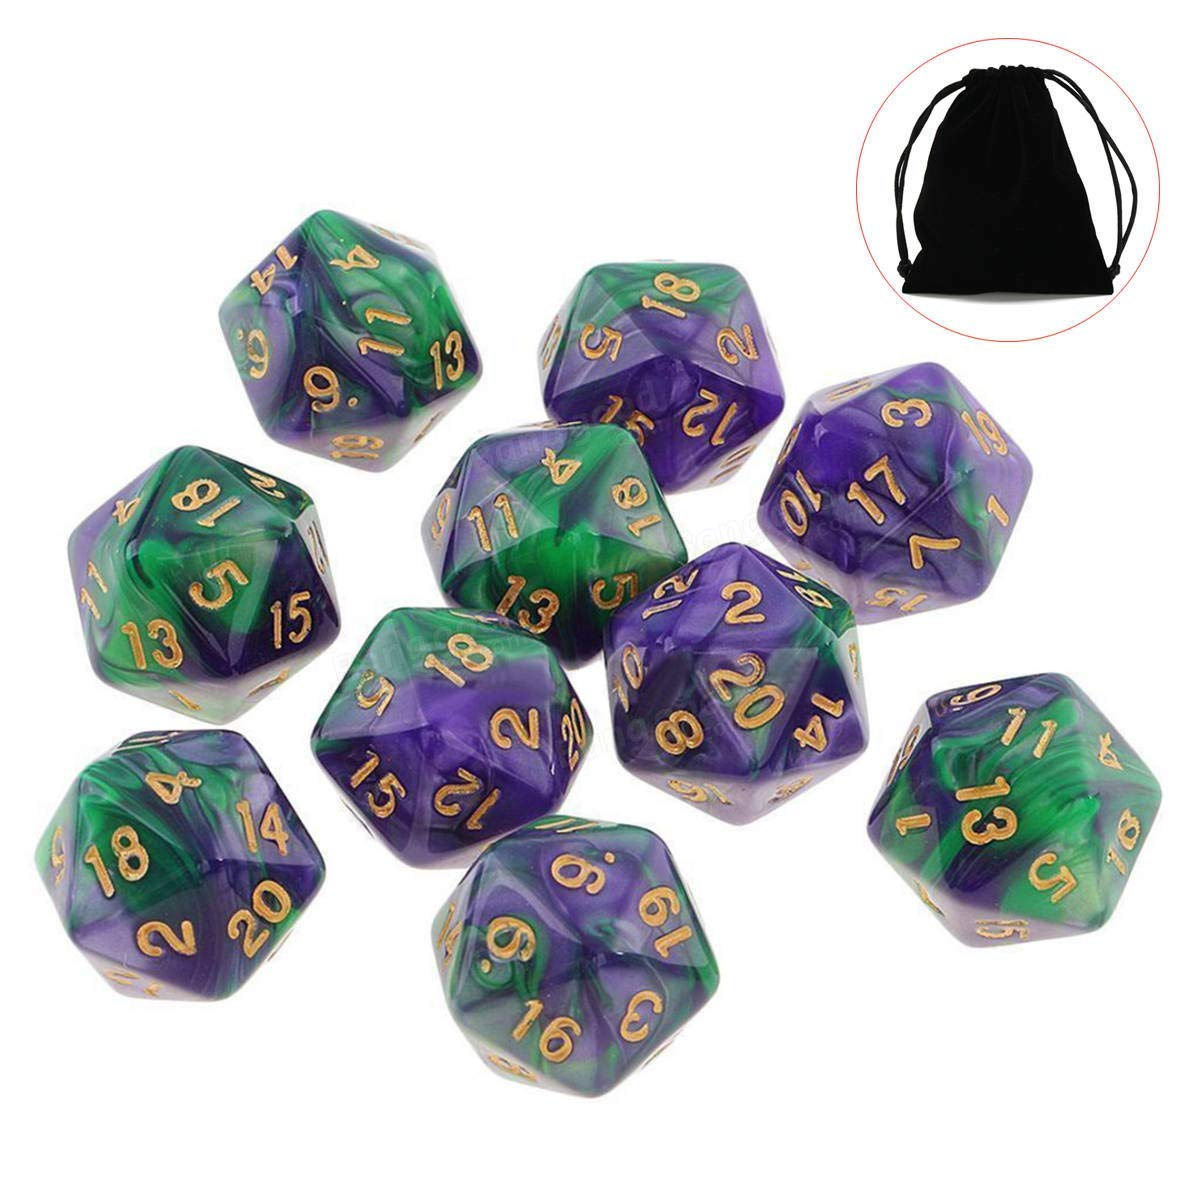 10pcs 20 Sided Dice D20 Polyhedral Dices Table Games Gadget Playing Multisided Dice - EDC Gadgets Gadgets - (#6) - 10 X D20 Polyhedral Dices, 1 X bag